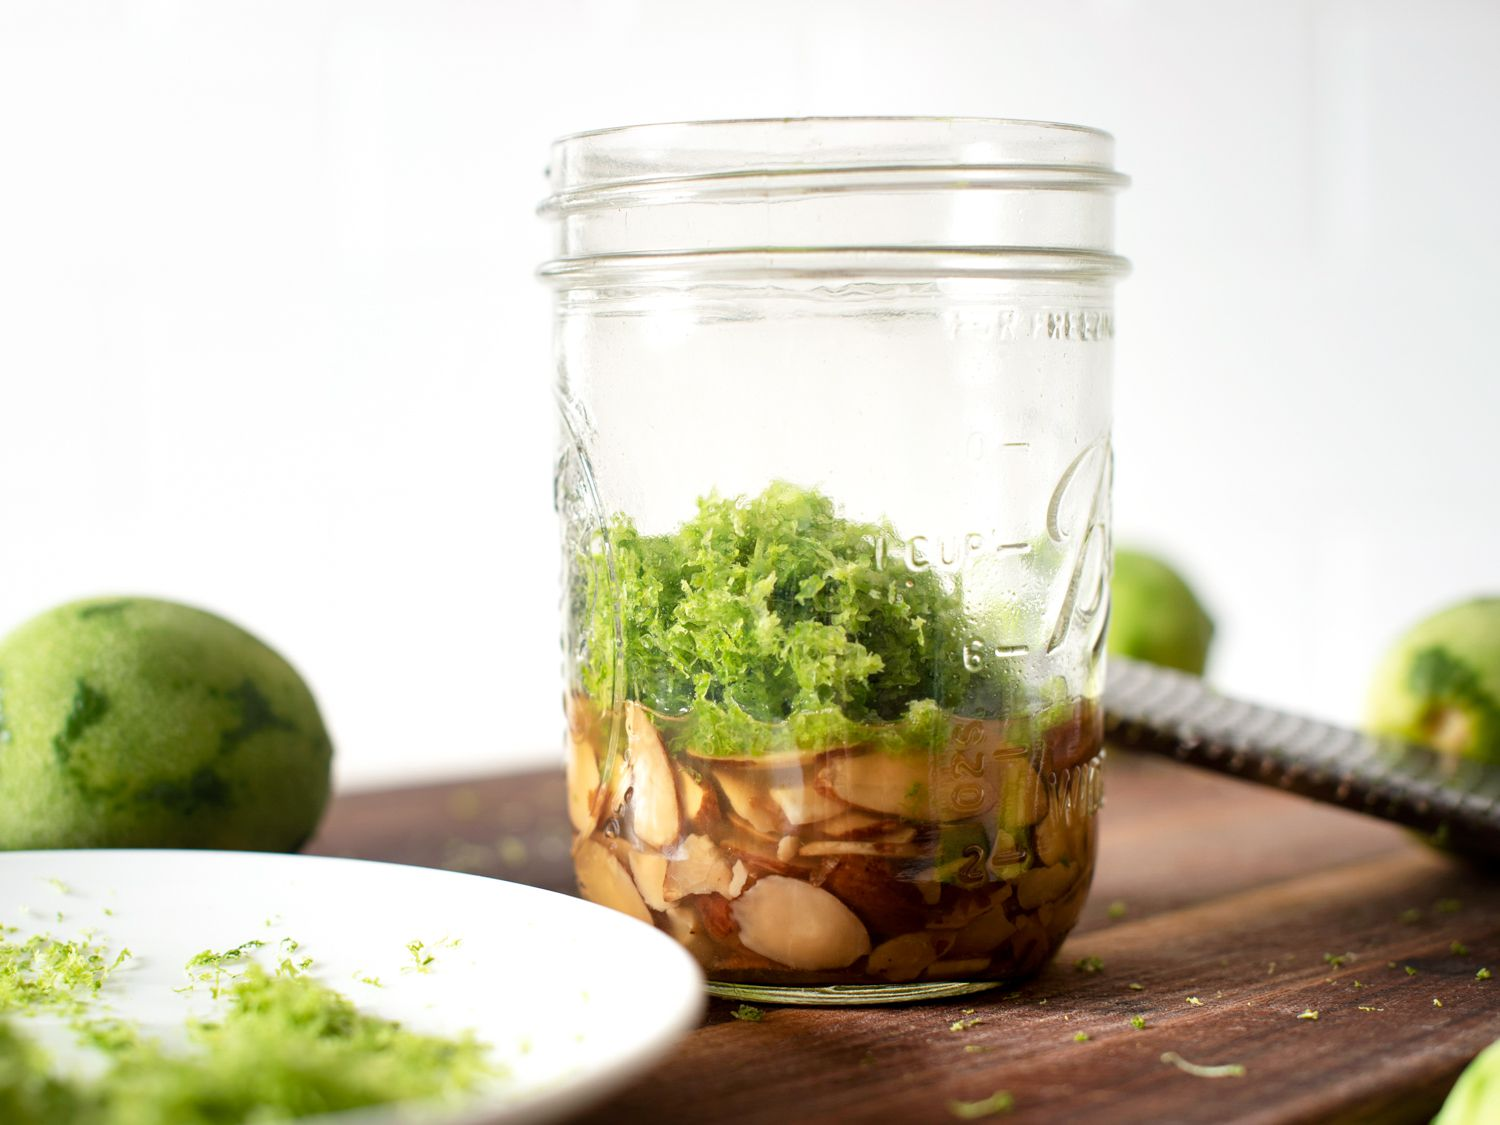 lime zest added to jar after 2 days of steeping